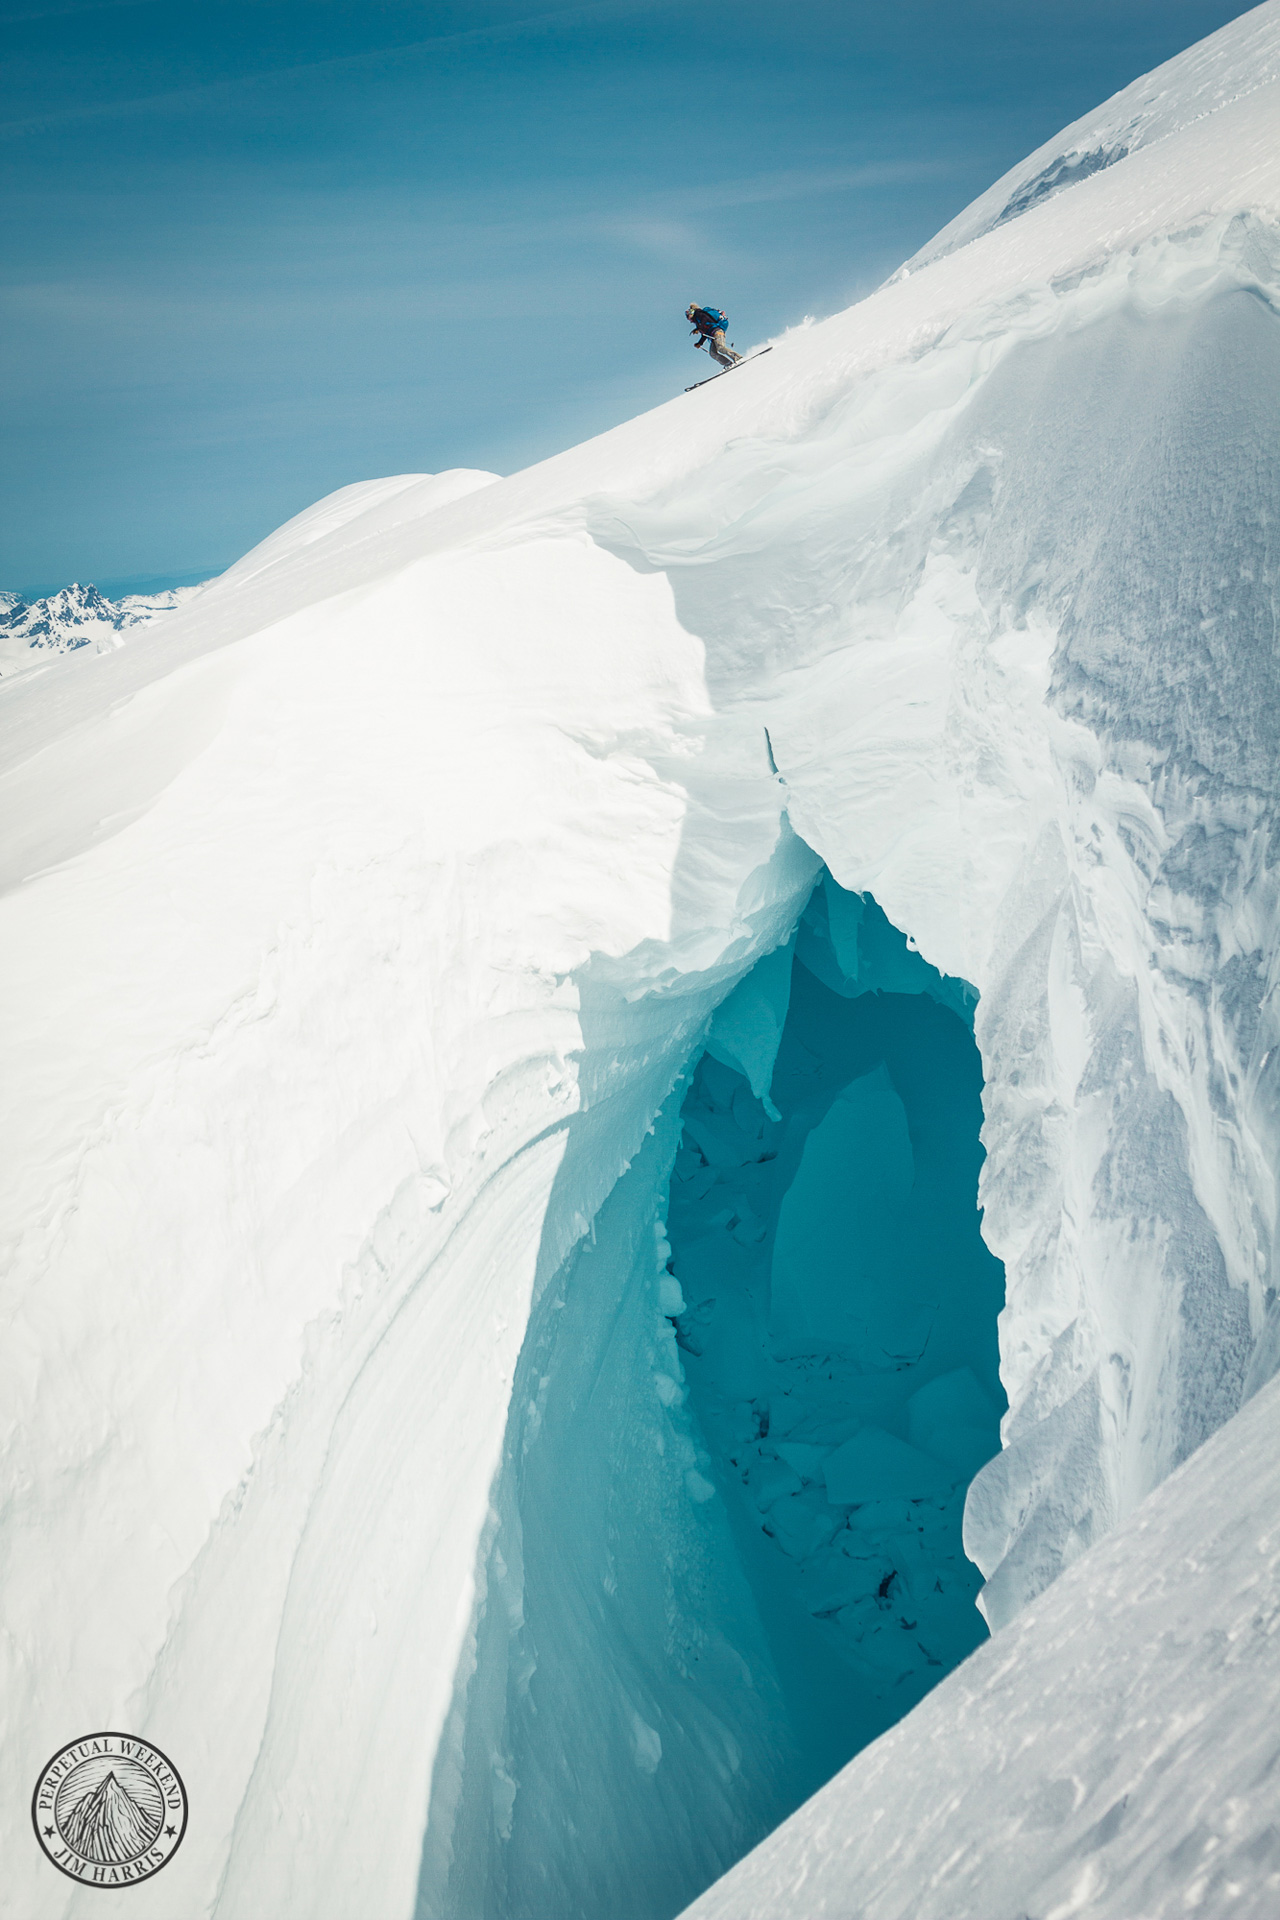 Solveig Waterfall skiing from the summit of Mt Waddington, BC over a cavernous crevasse. Photo by Jim Harris